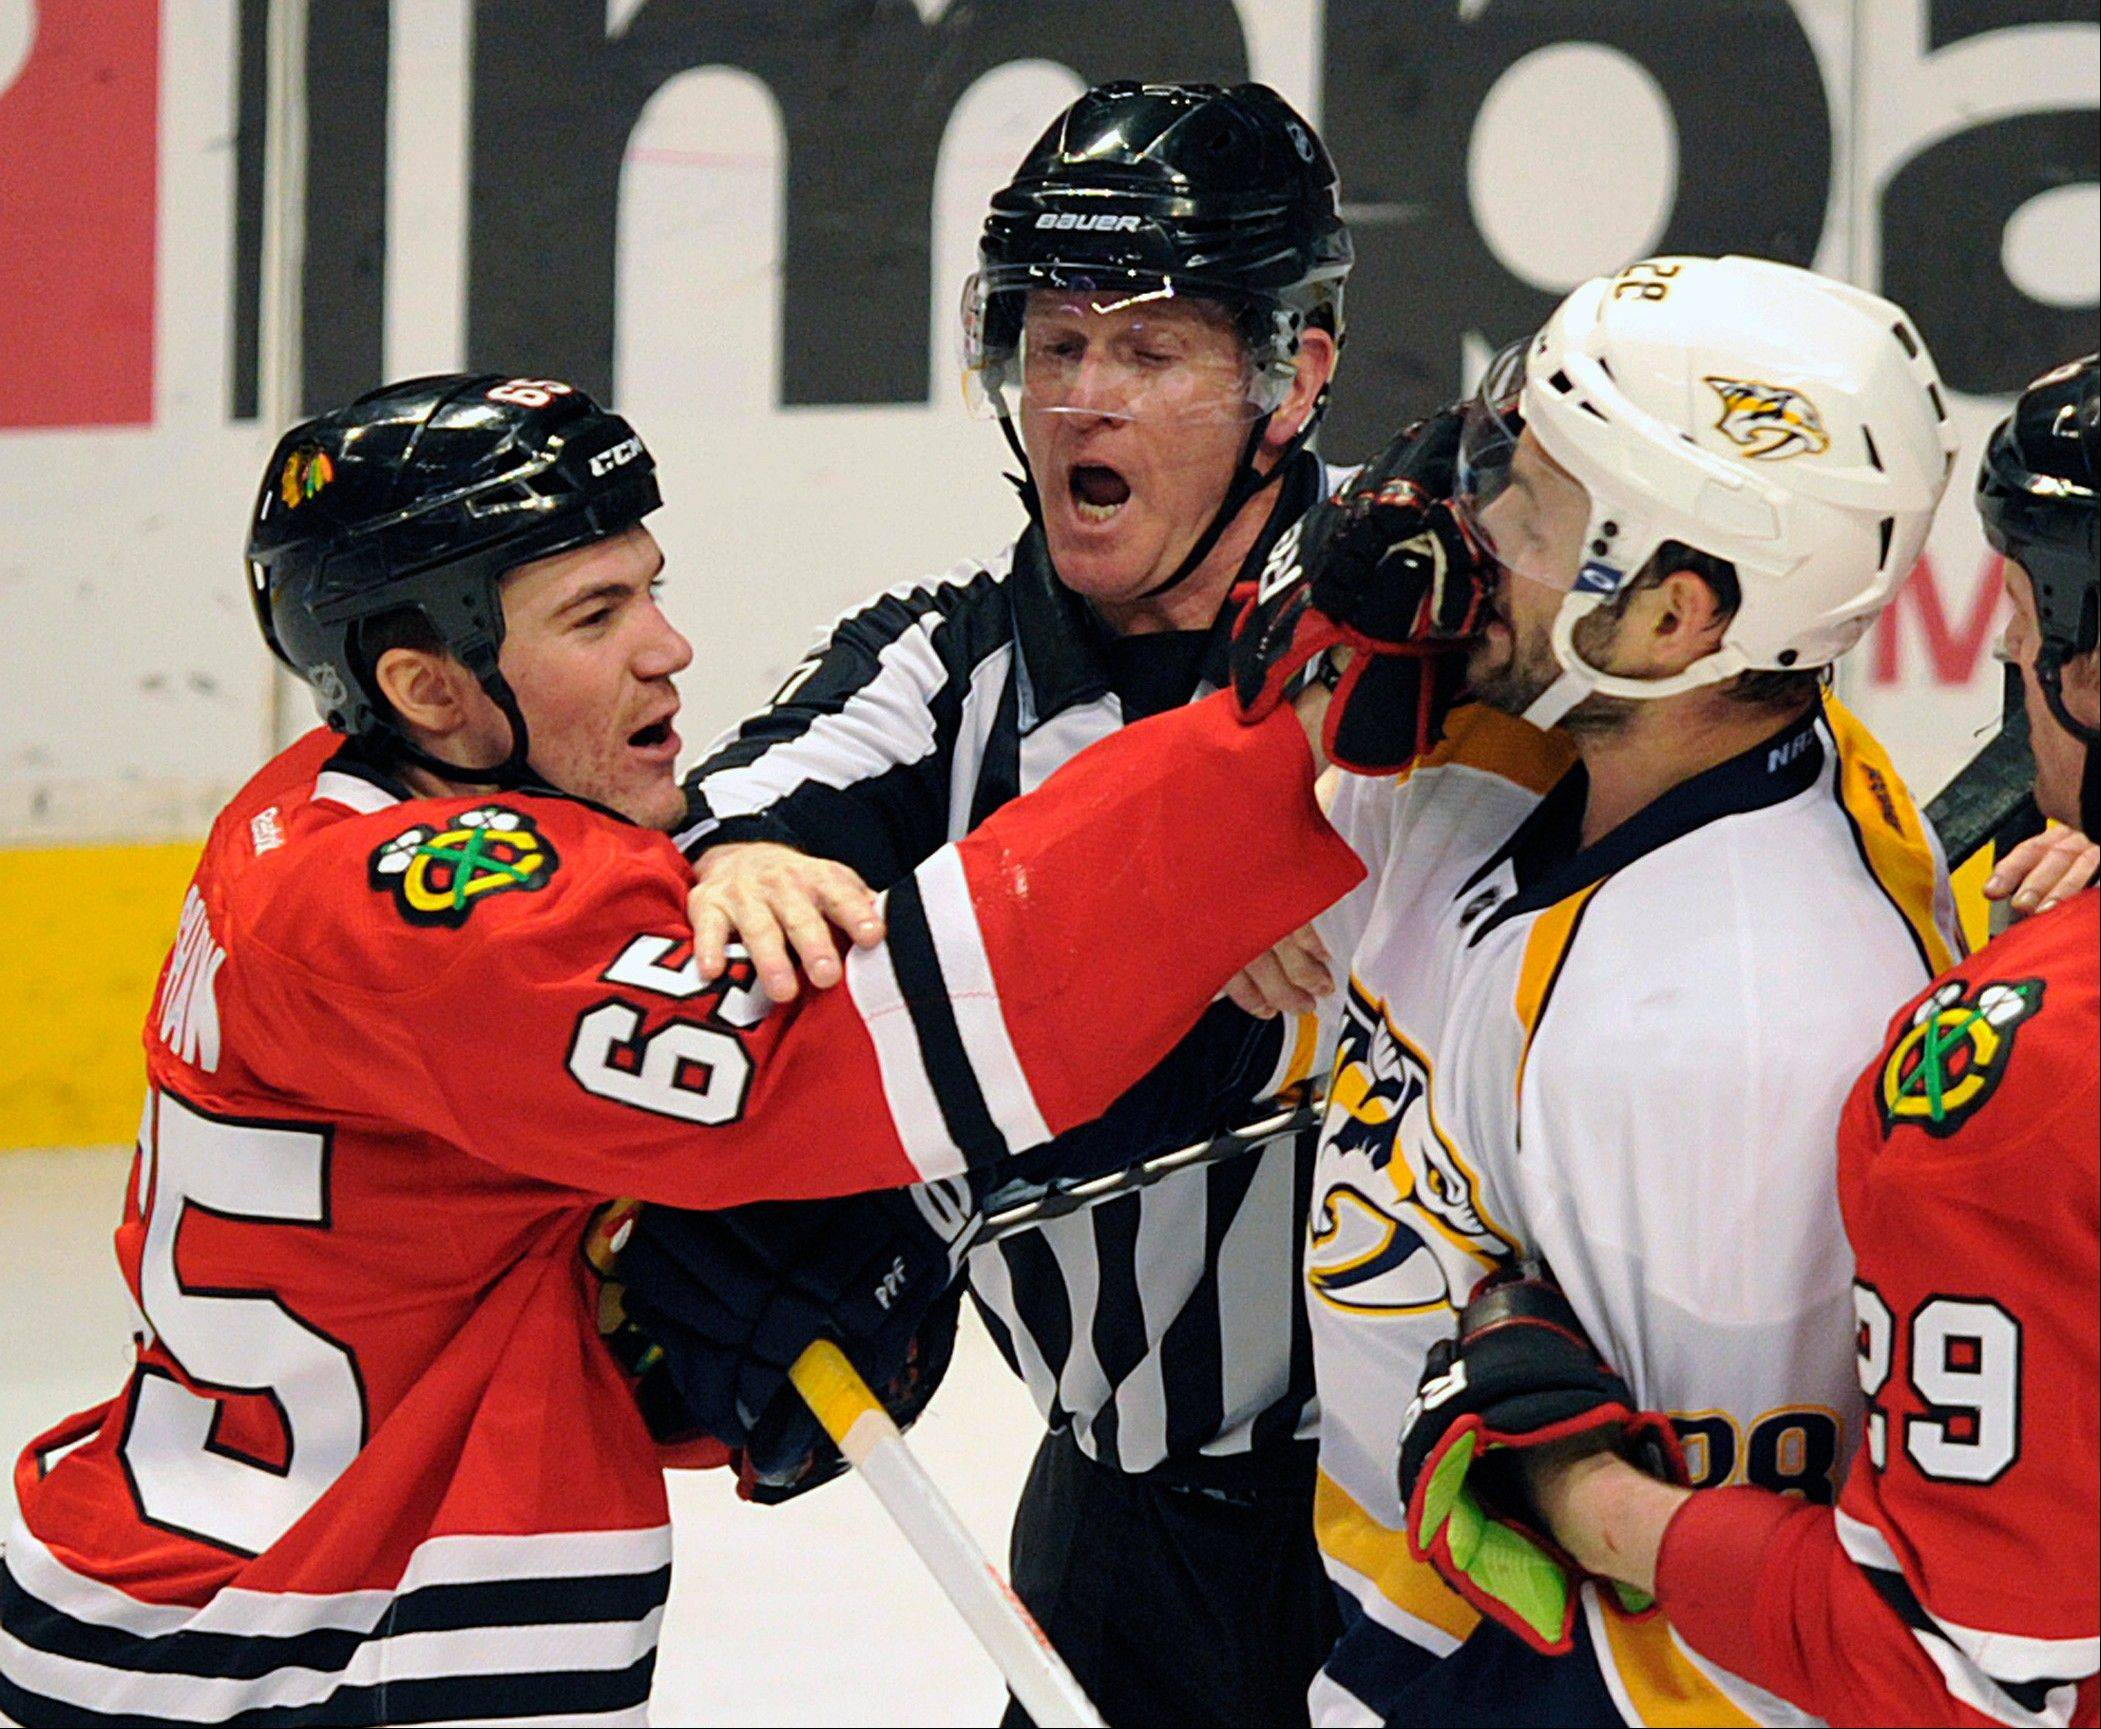 Chicago Blackhawks' Andrew Shaw (65) punches Nashville Predators' Paul Gaustad during a fight in the second period.